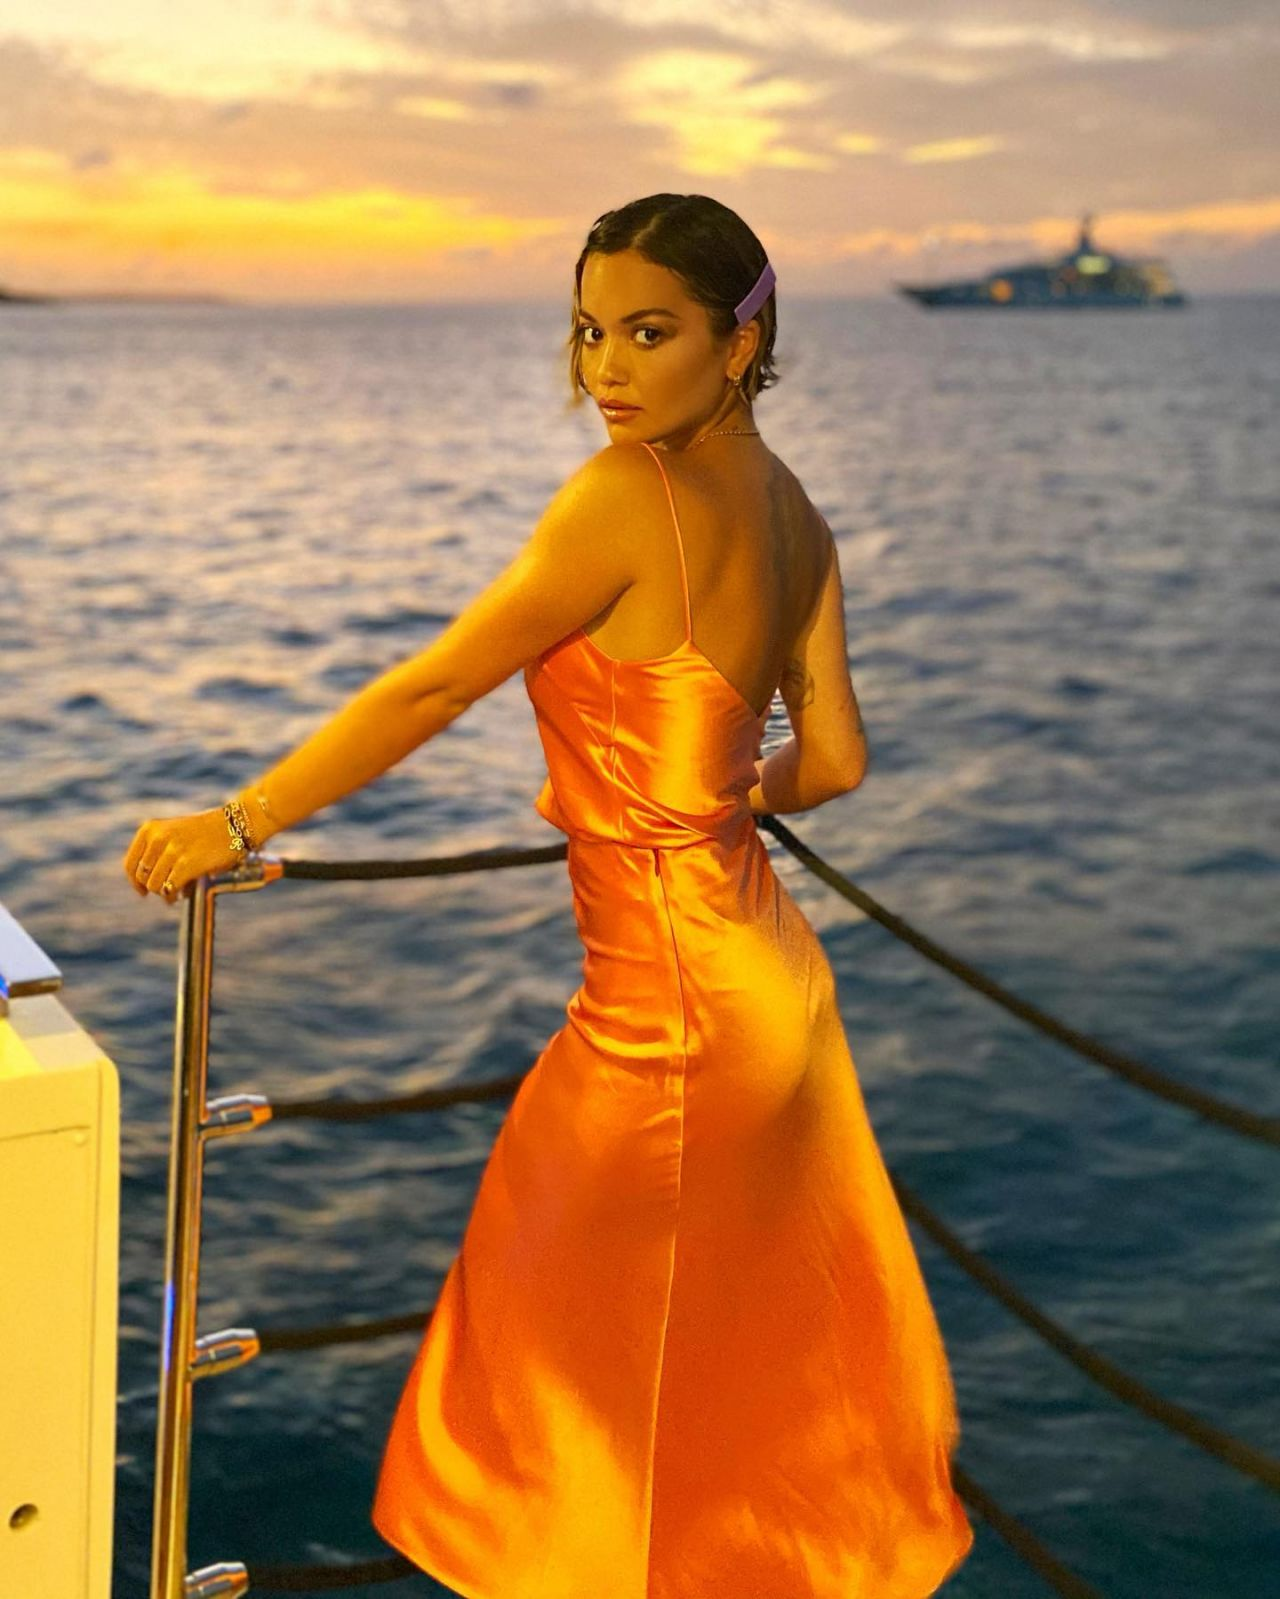 Rita Ora goes braless in slinky orange satin gown as she heads on scenic Christmas Day boat trip in St Barts